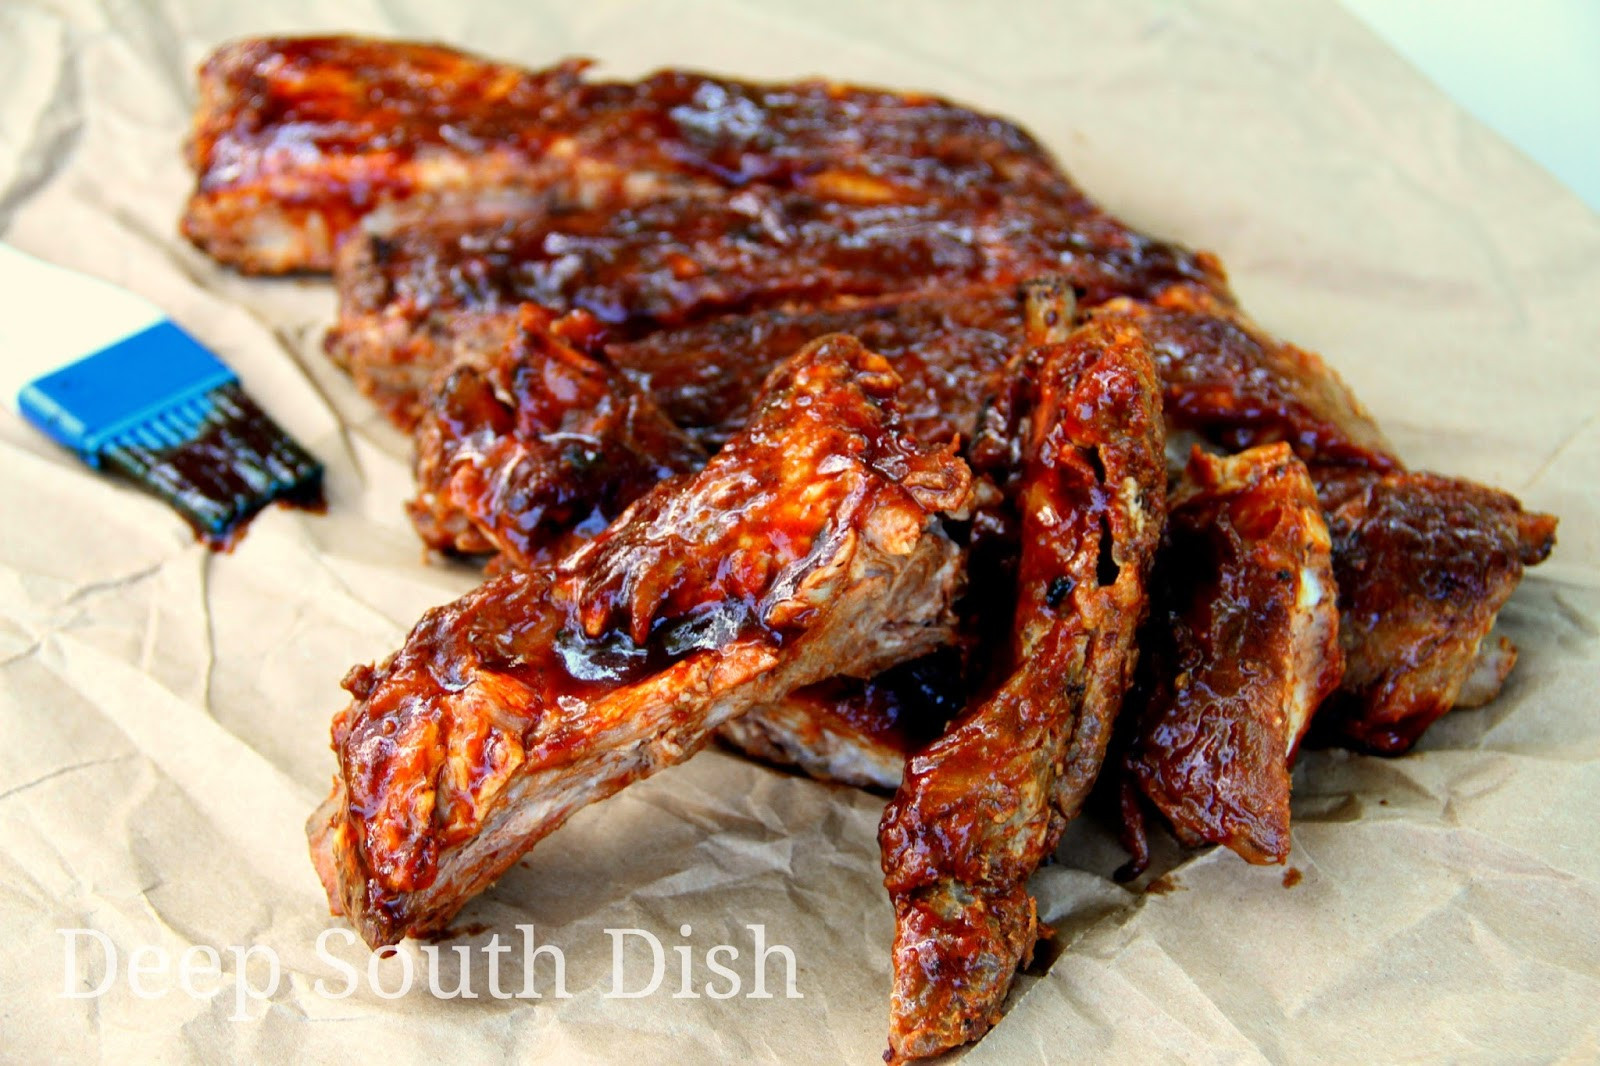 Grilling Pork Ribs  Deep South Dish Grilled Pork Spareribs or Baby Back Ribs